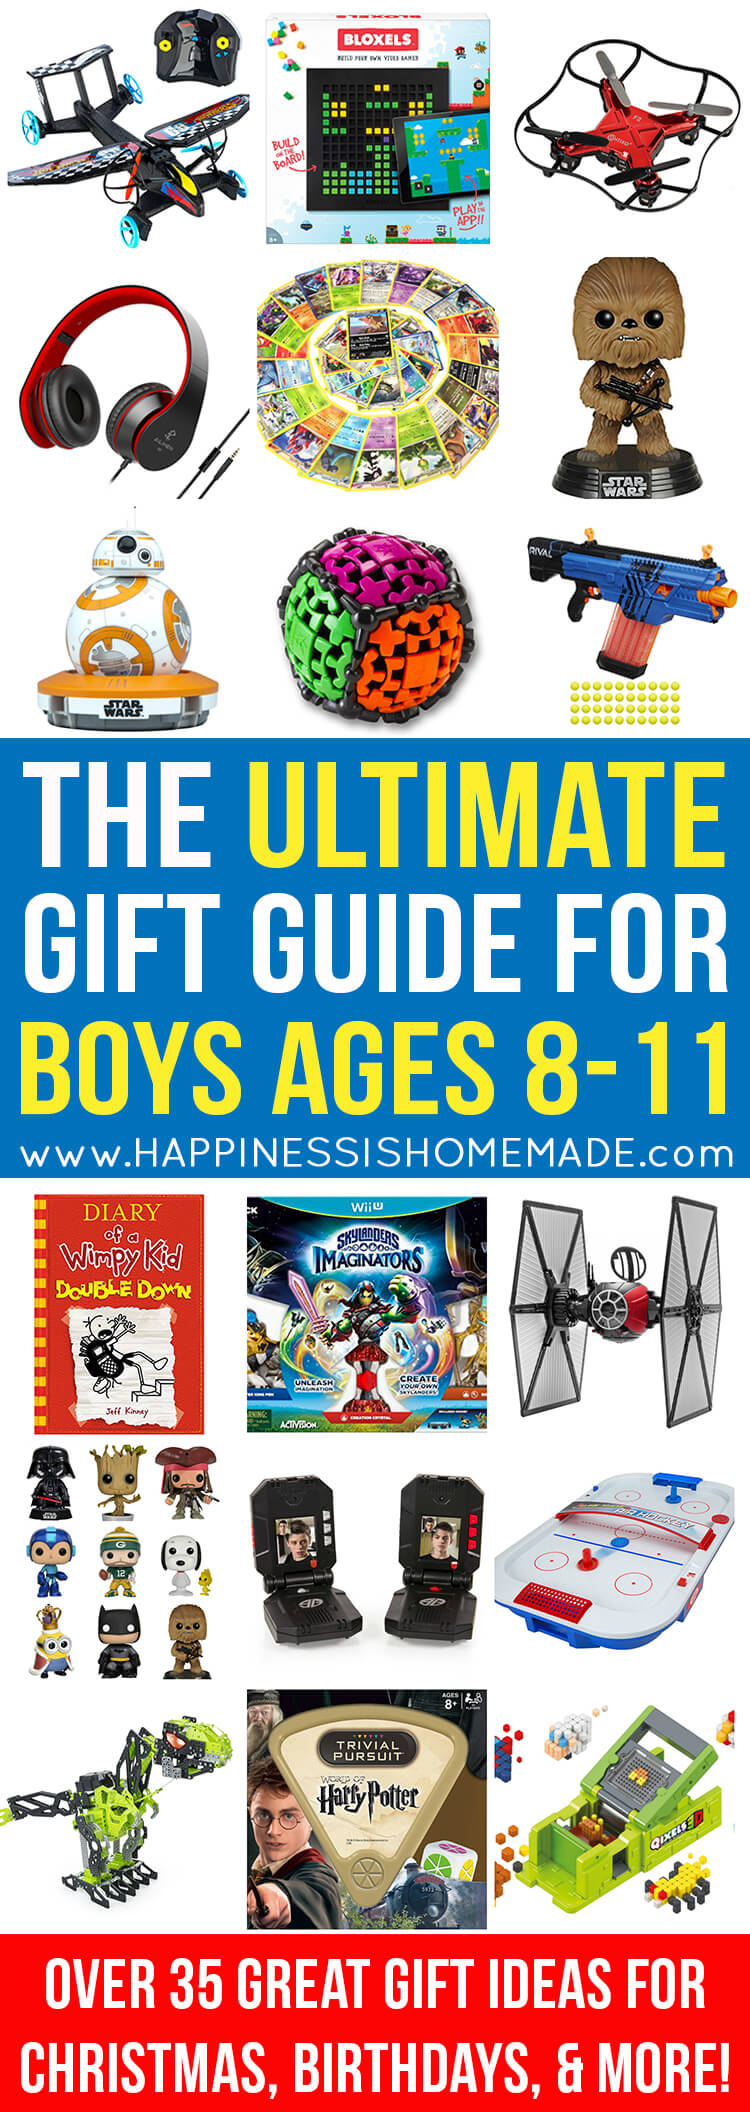 The Best Gift Ideas for Boys 8-11 - The Ultimate Gift Guide for Boys